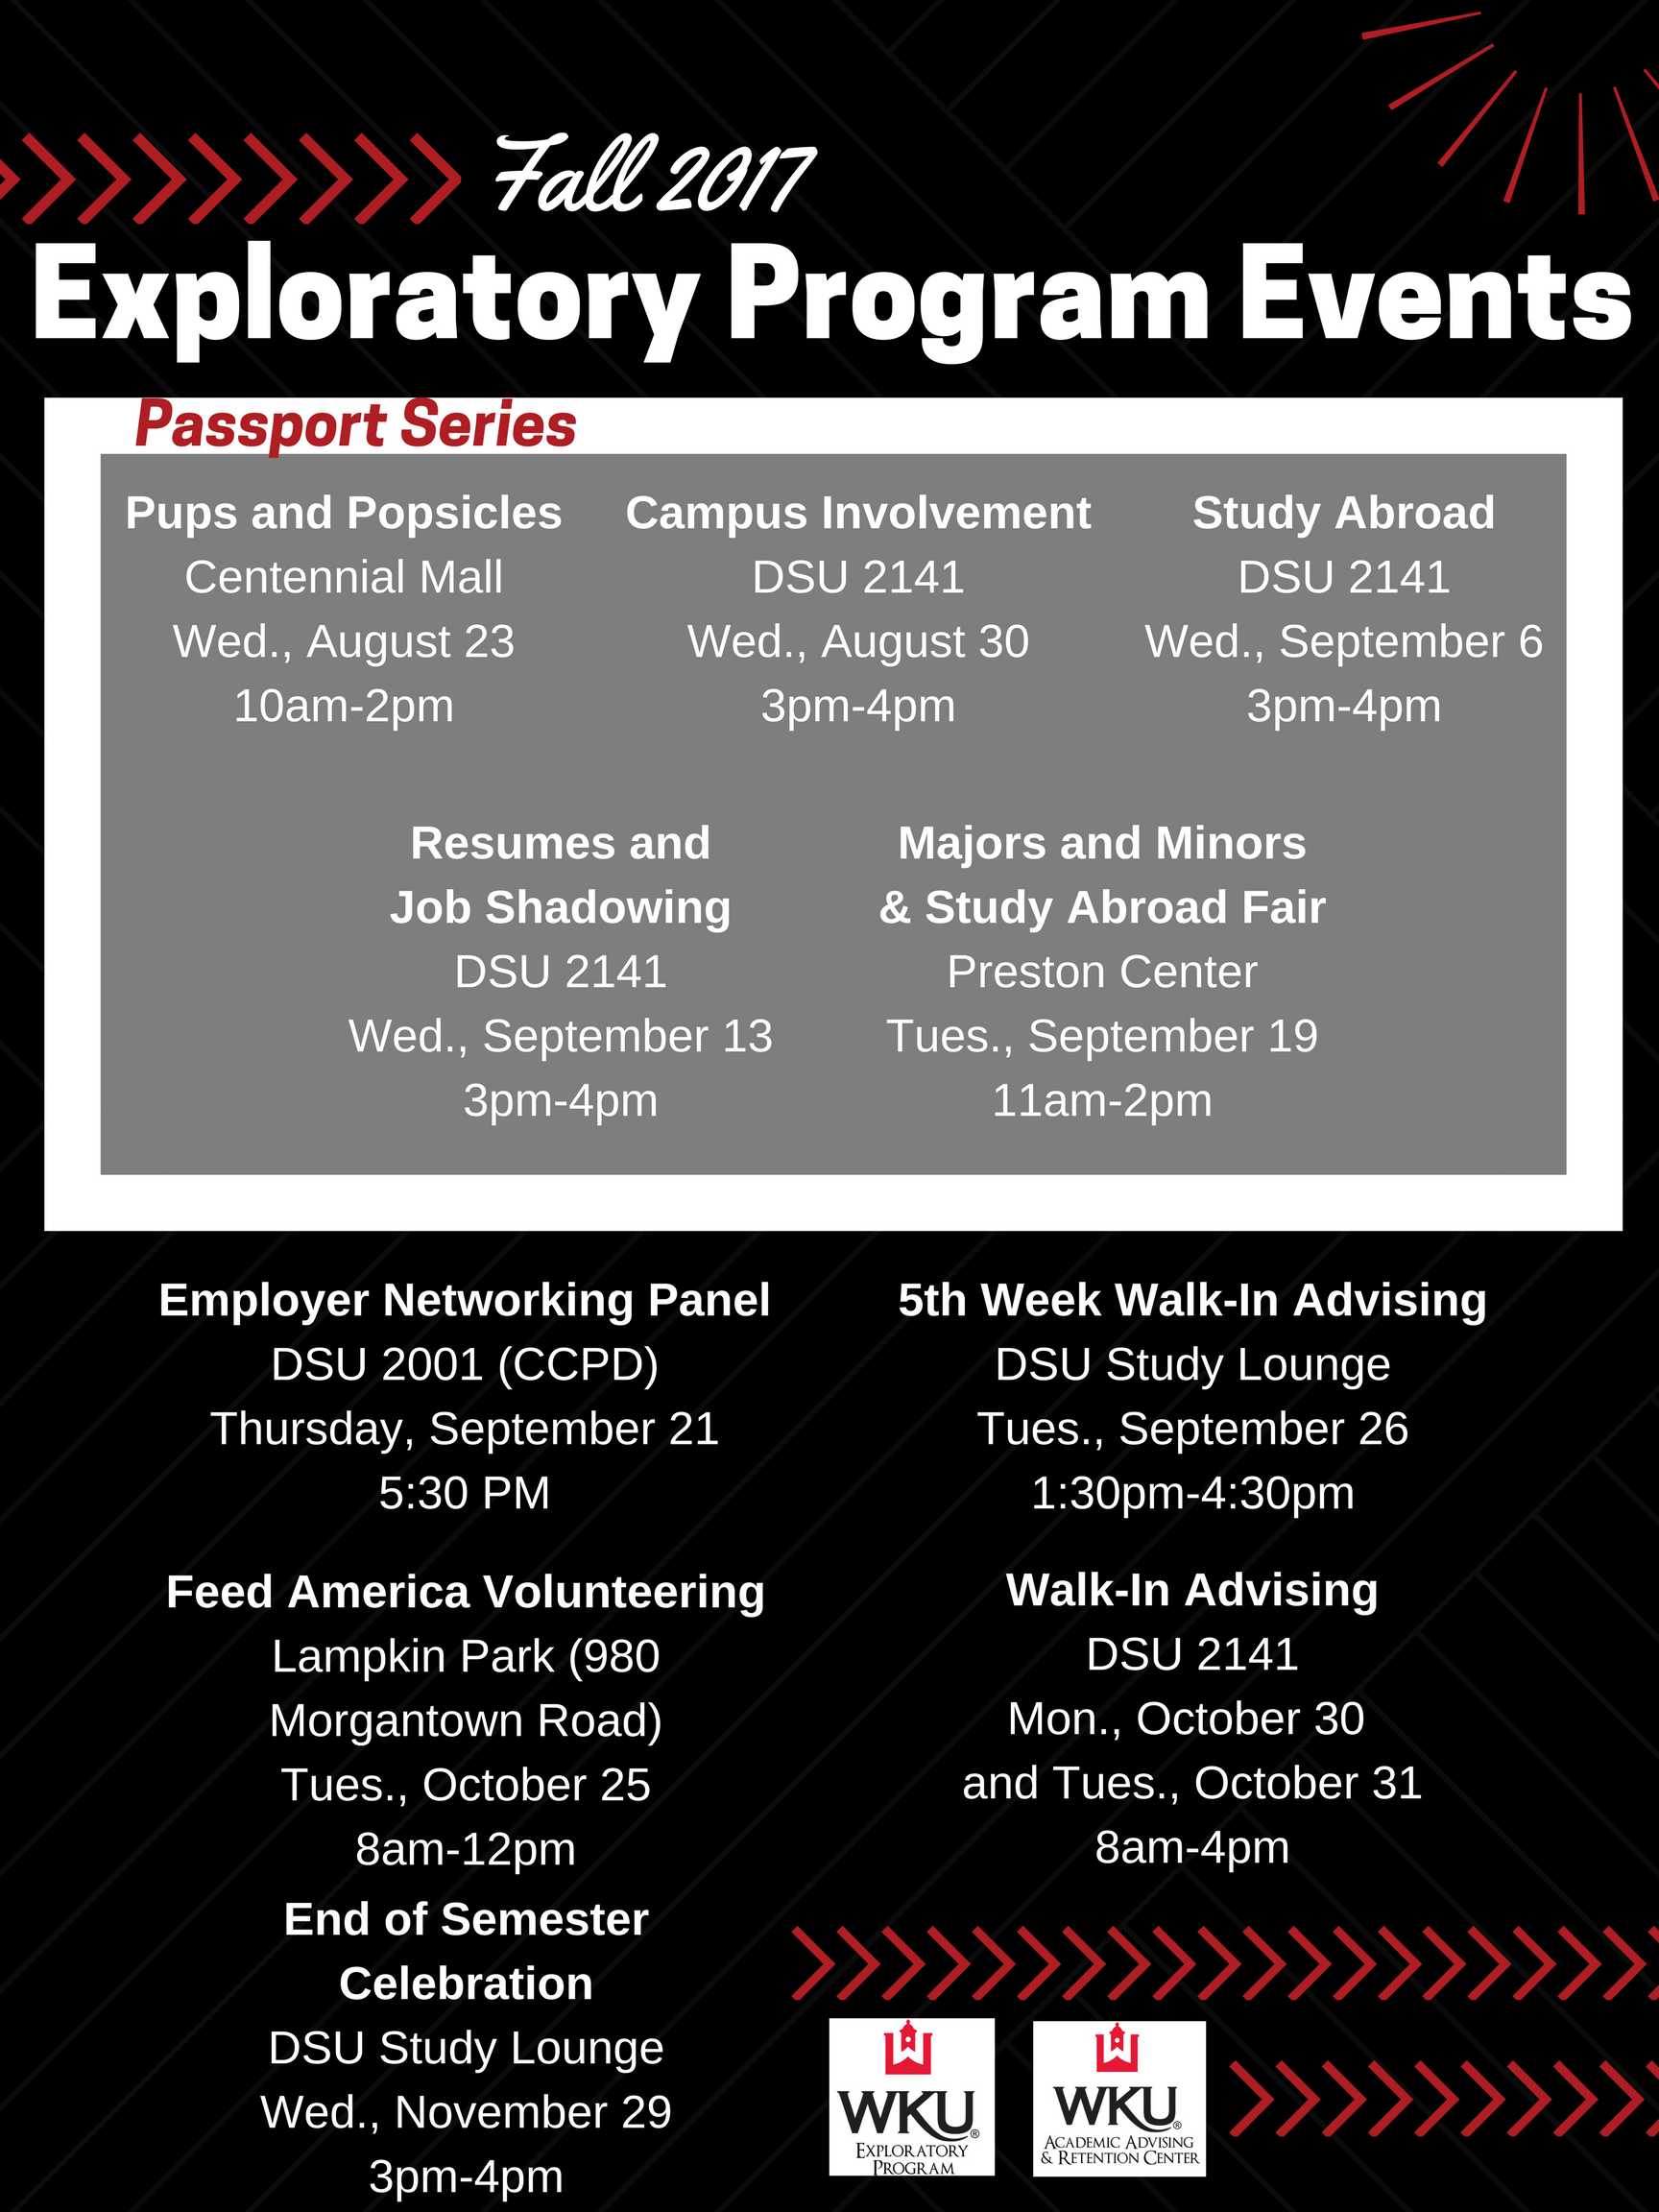 Fall 2017 Events